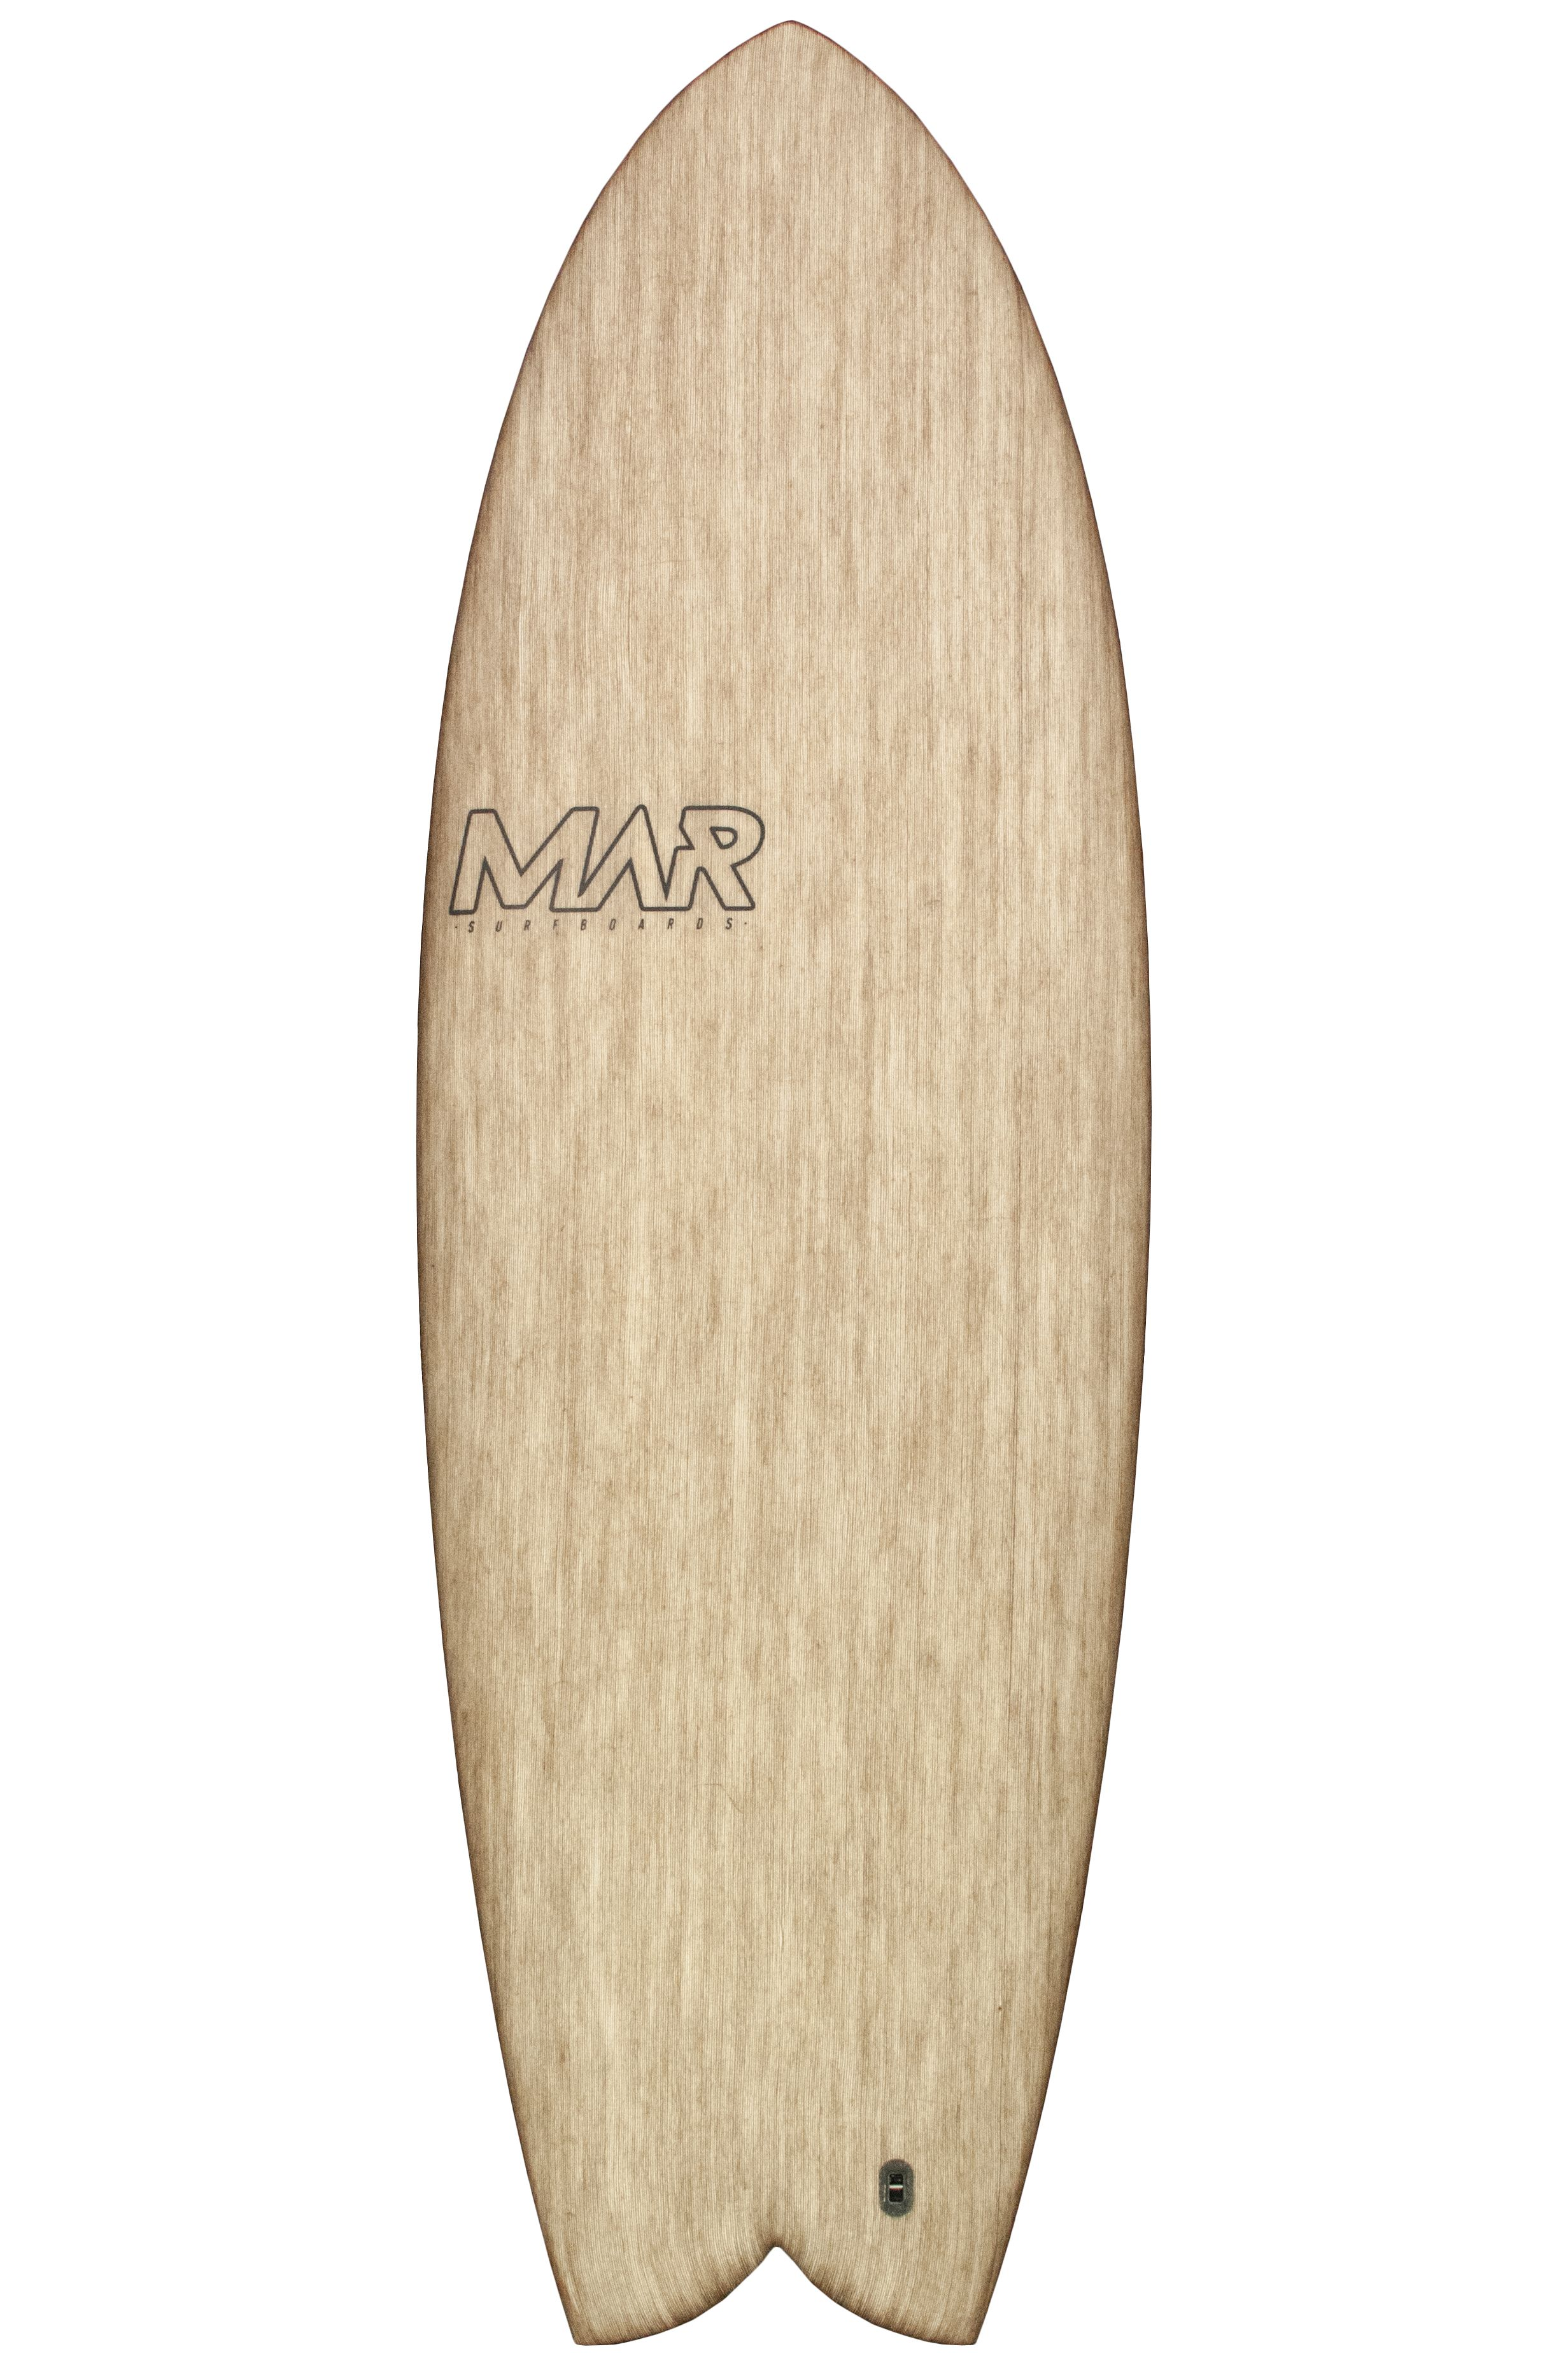 Mar Surf Board 5'3 THE 2 Swallow Tail - Color FCS II Twin Tab 5ft3